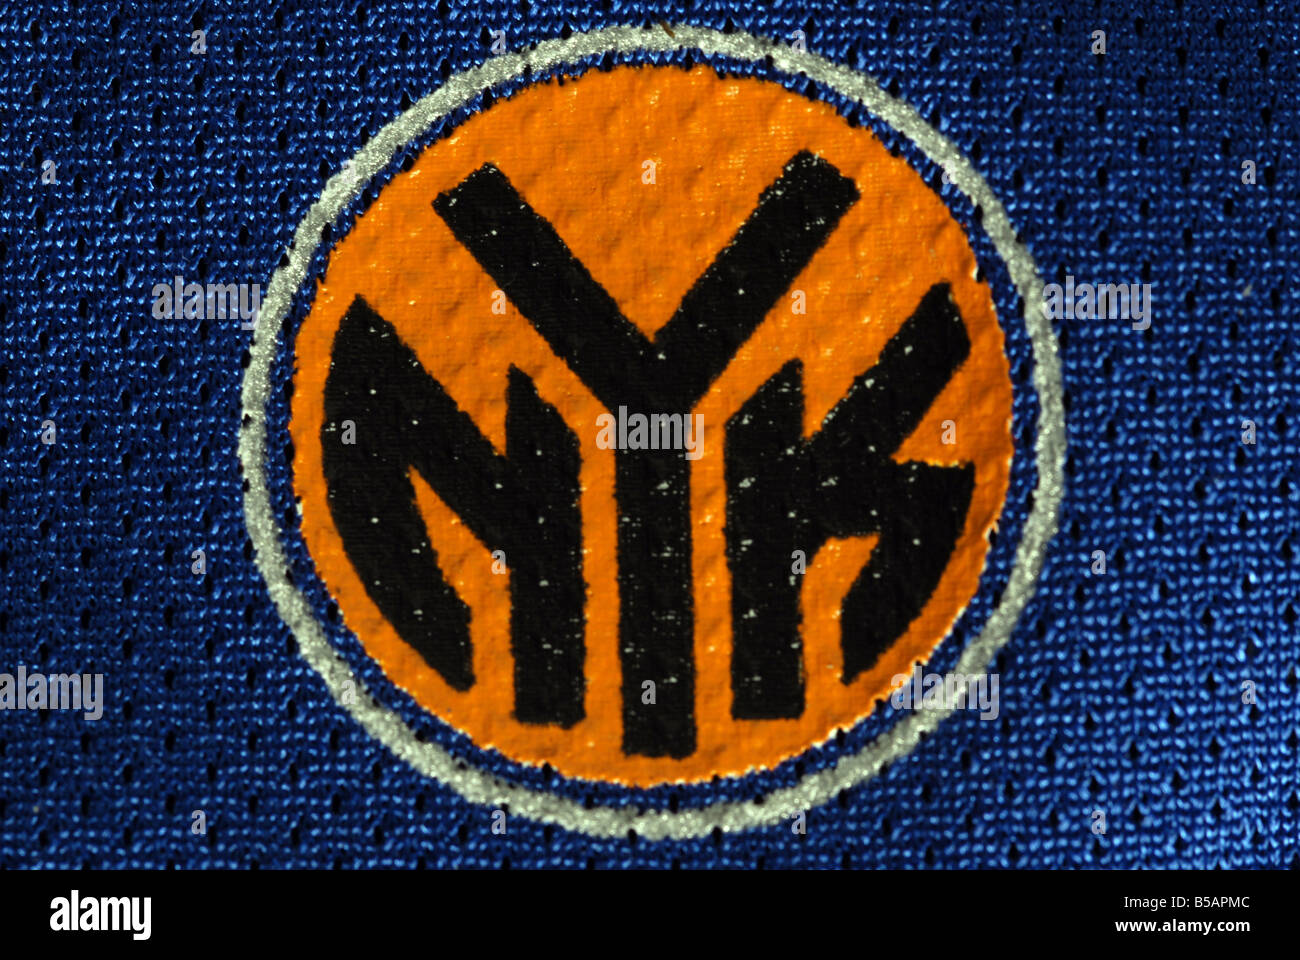 New York Knicks Logo High Resolution Stock Photography And Images Alamy